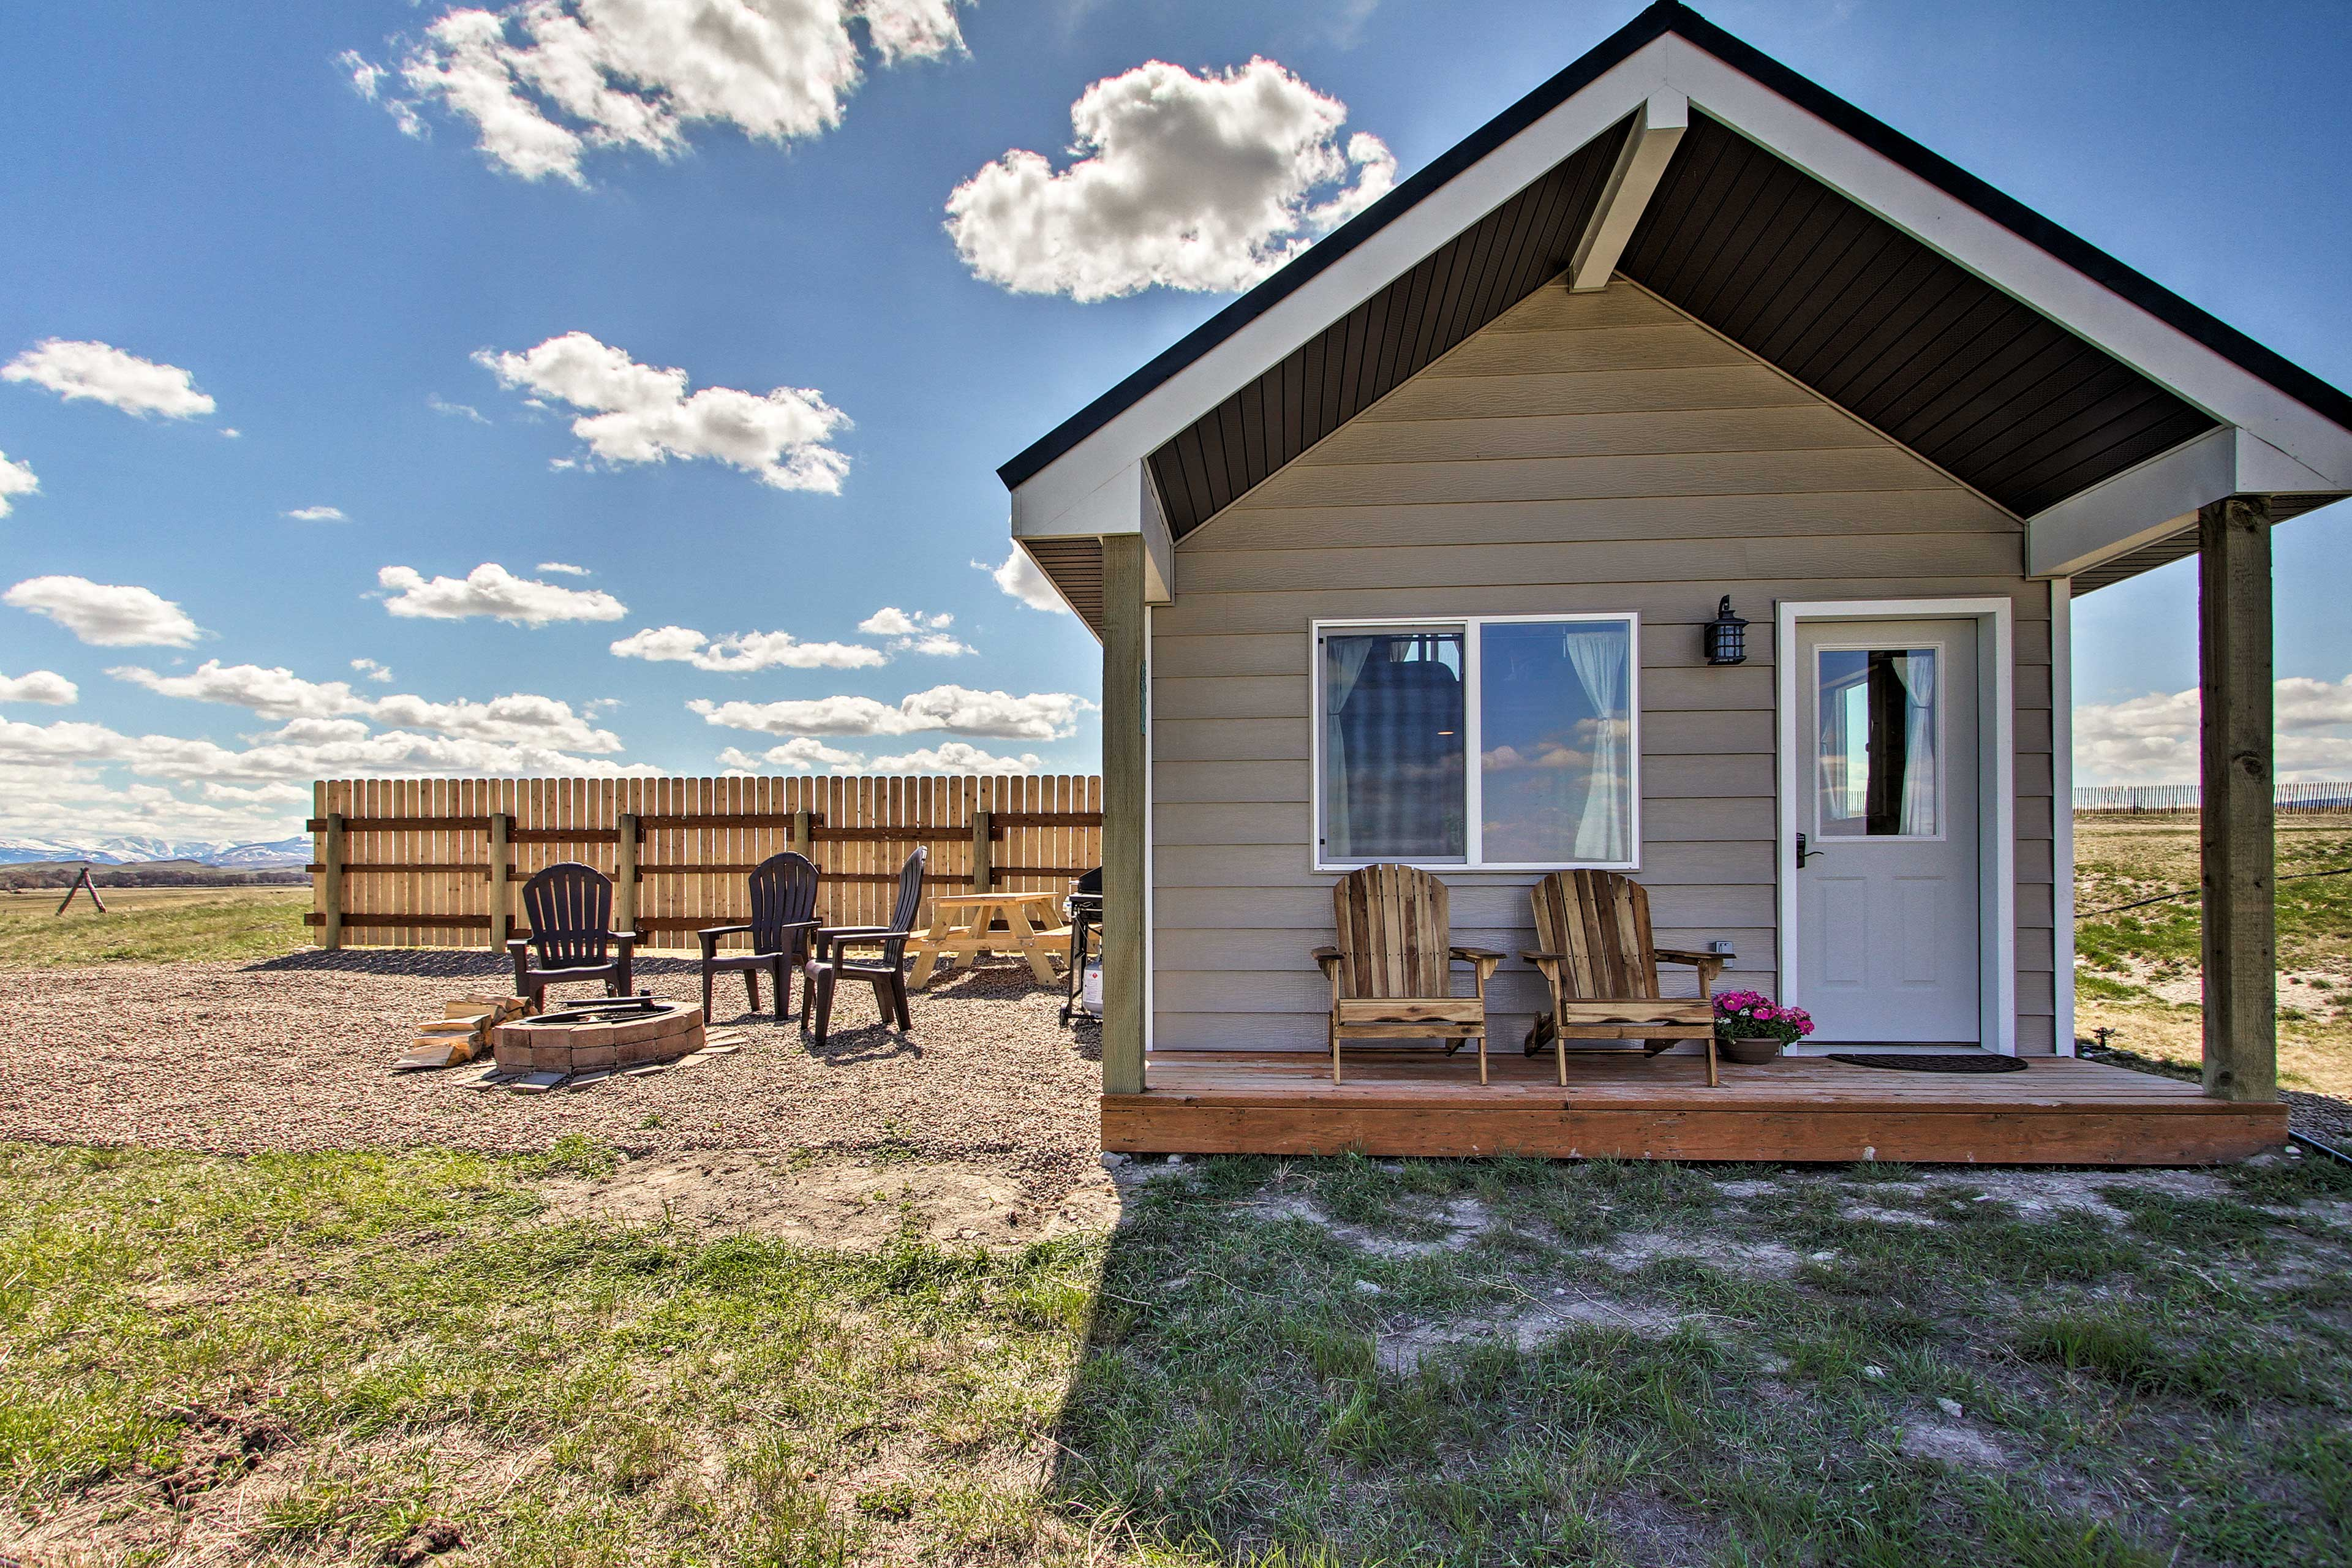 Pack your bags for an outdoor adventure at this vacation rental house!